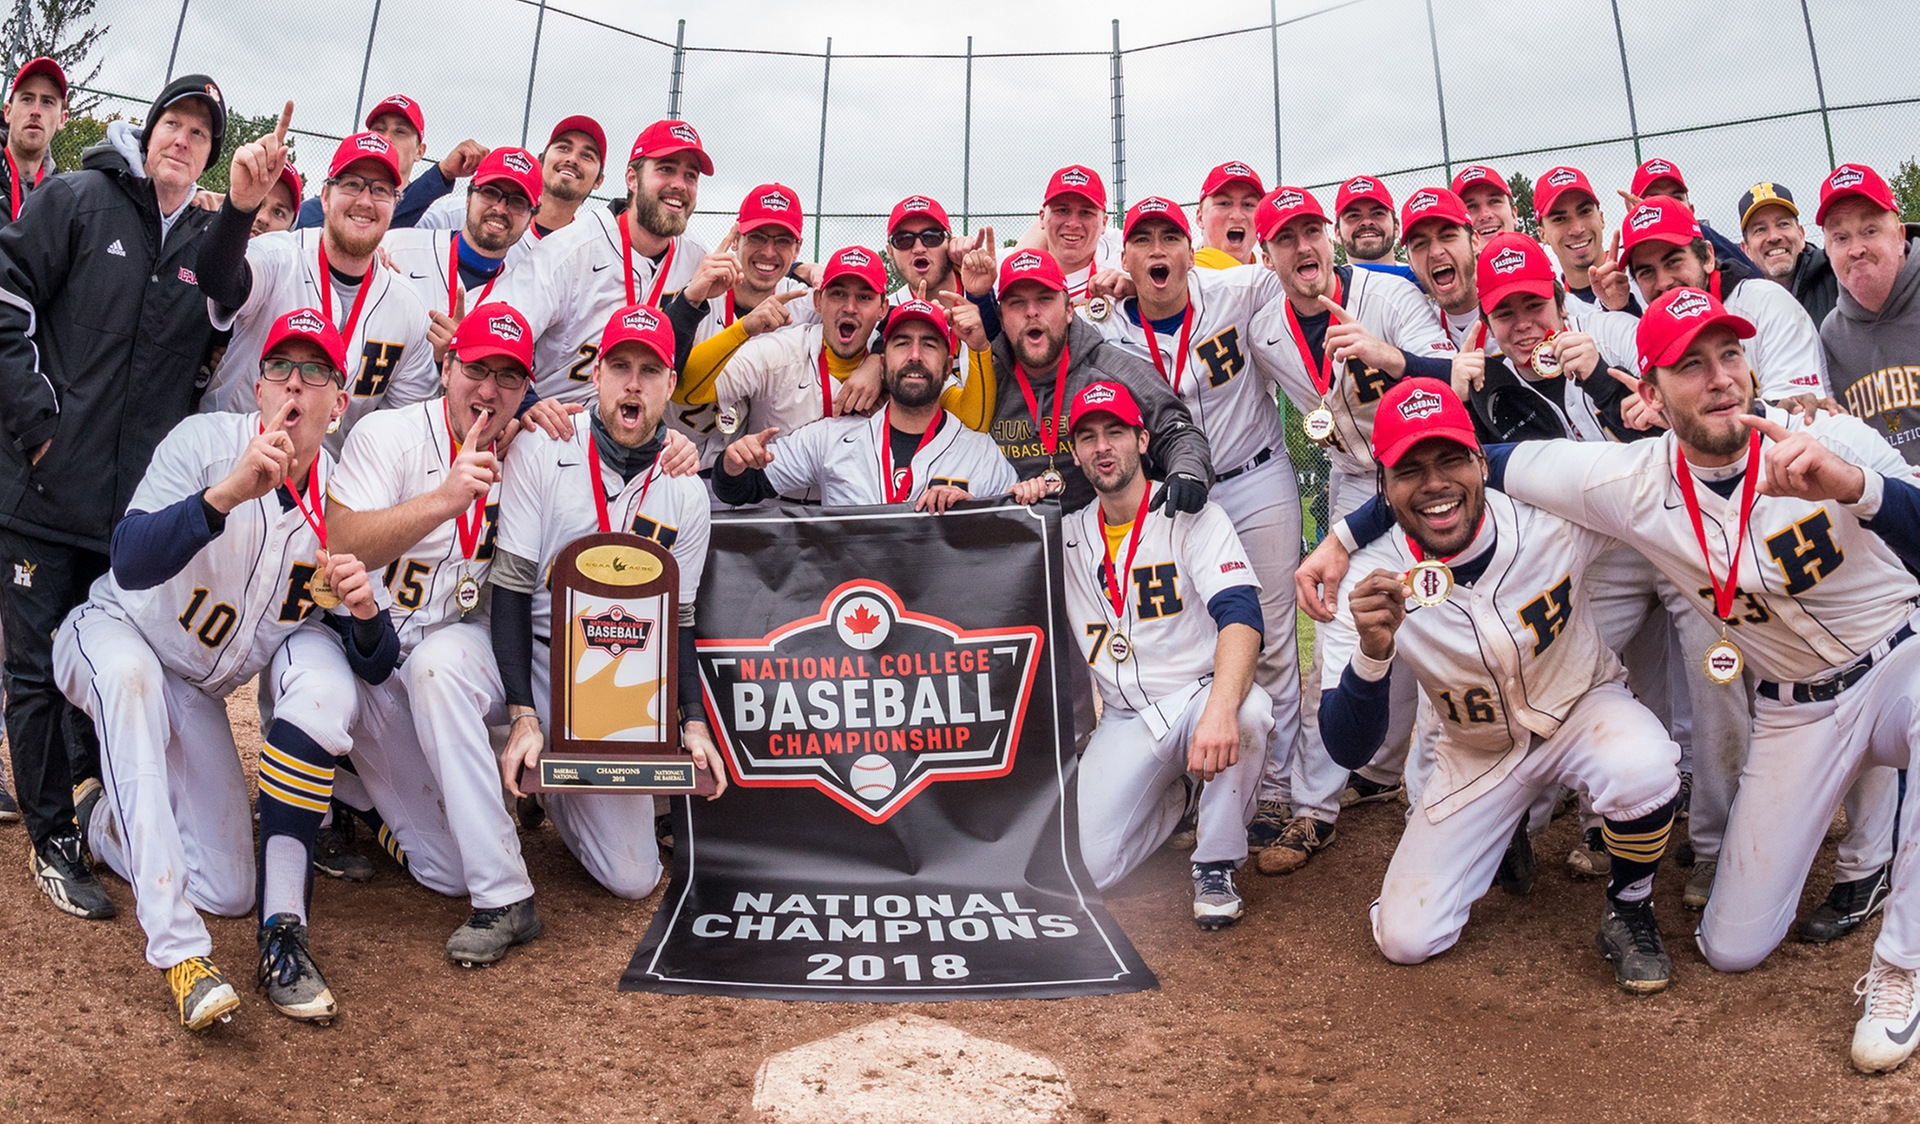 HAWKS WIN THEIR FIRST NCBC NATIONAL CHAMPIONSHIP WITH 7-3 WIN OVER ST. CLAIR